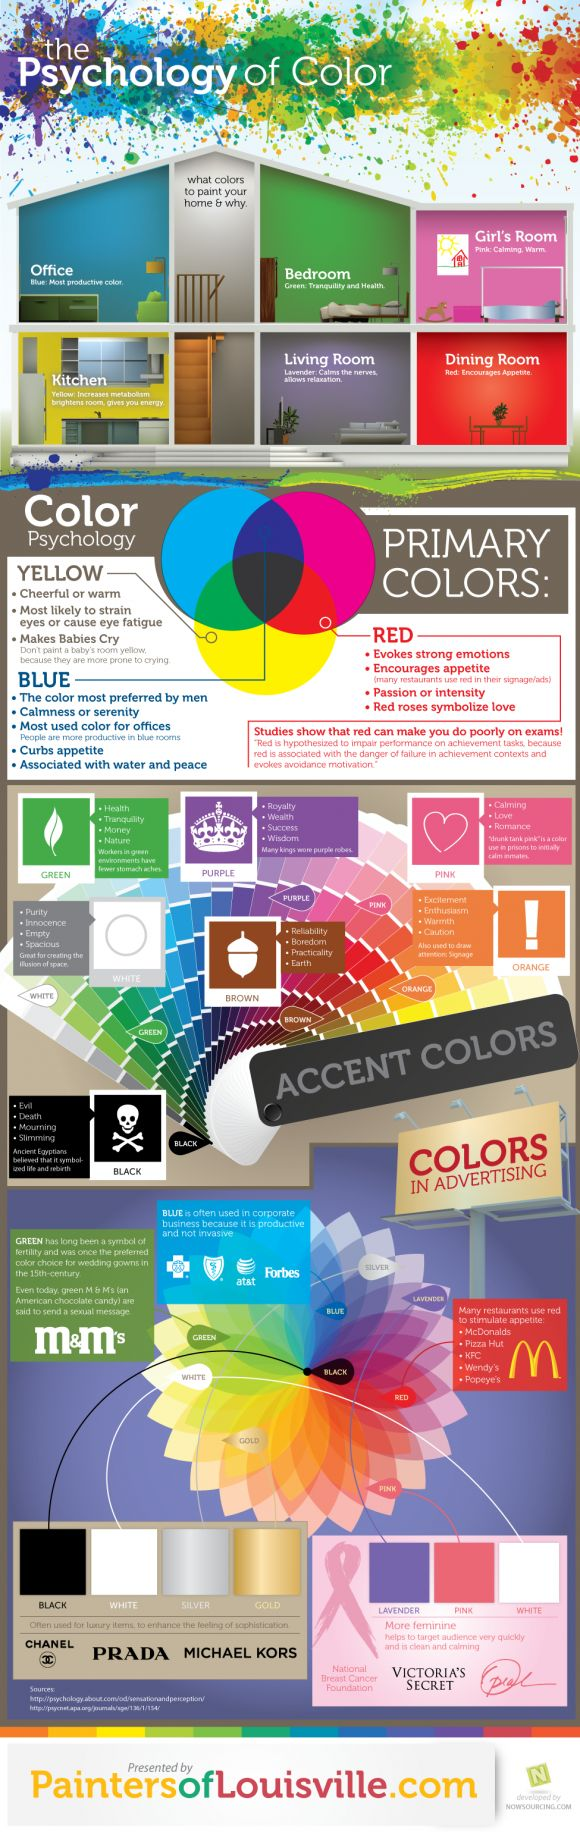 psychology of color: Colors Charts, Website, Psychology Of Colors, Paintings Colors, Web Site, Colors Psychology, Internet Site, Infographic, Rooms Colors